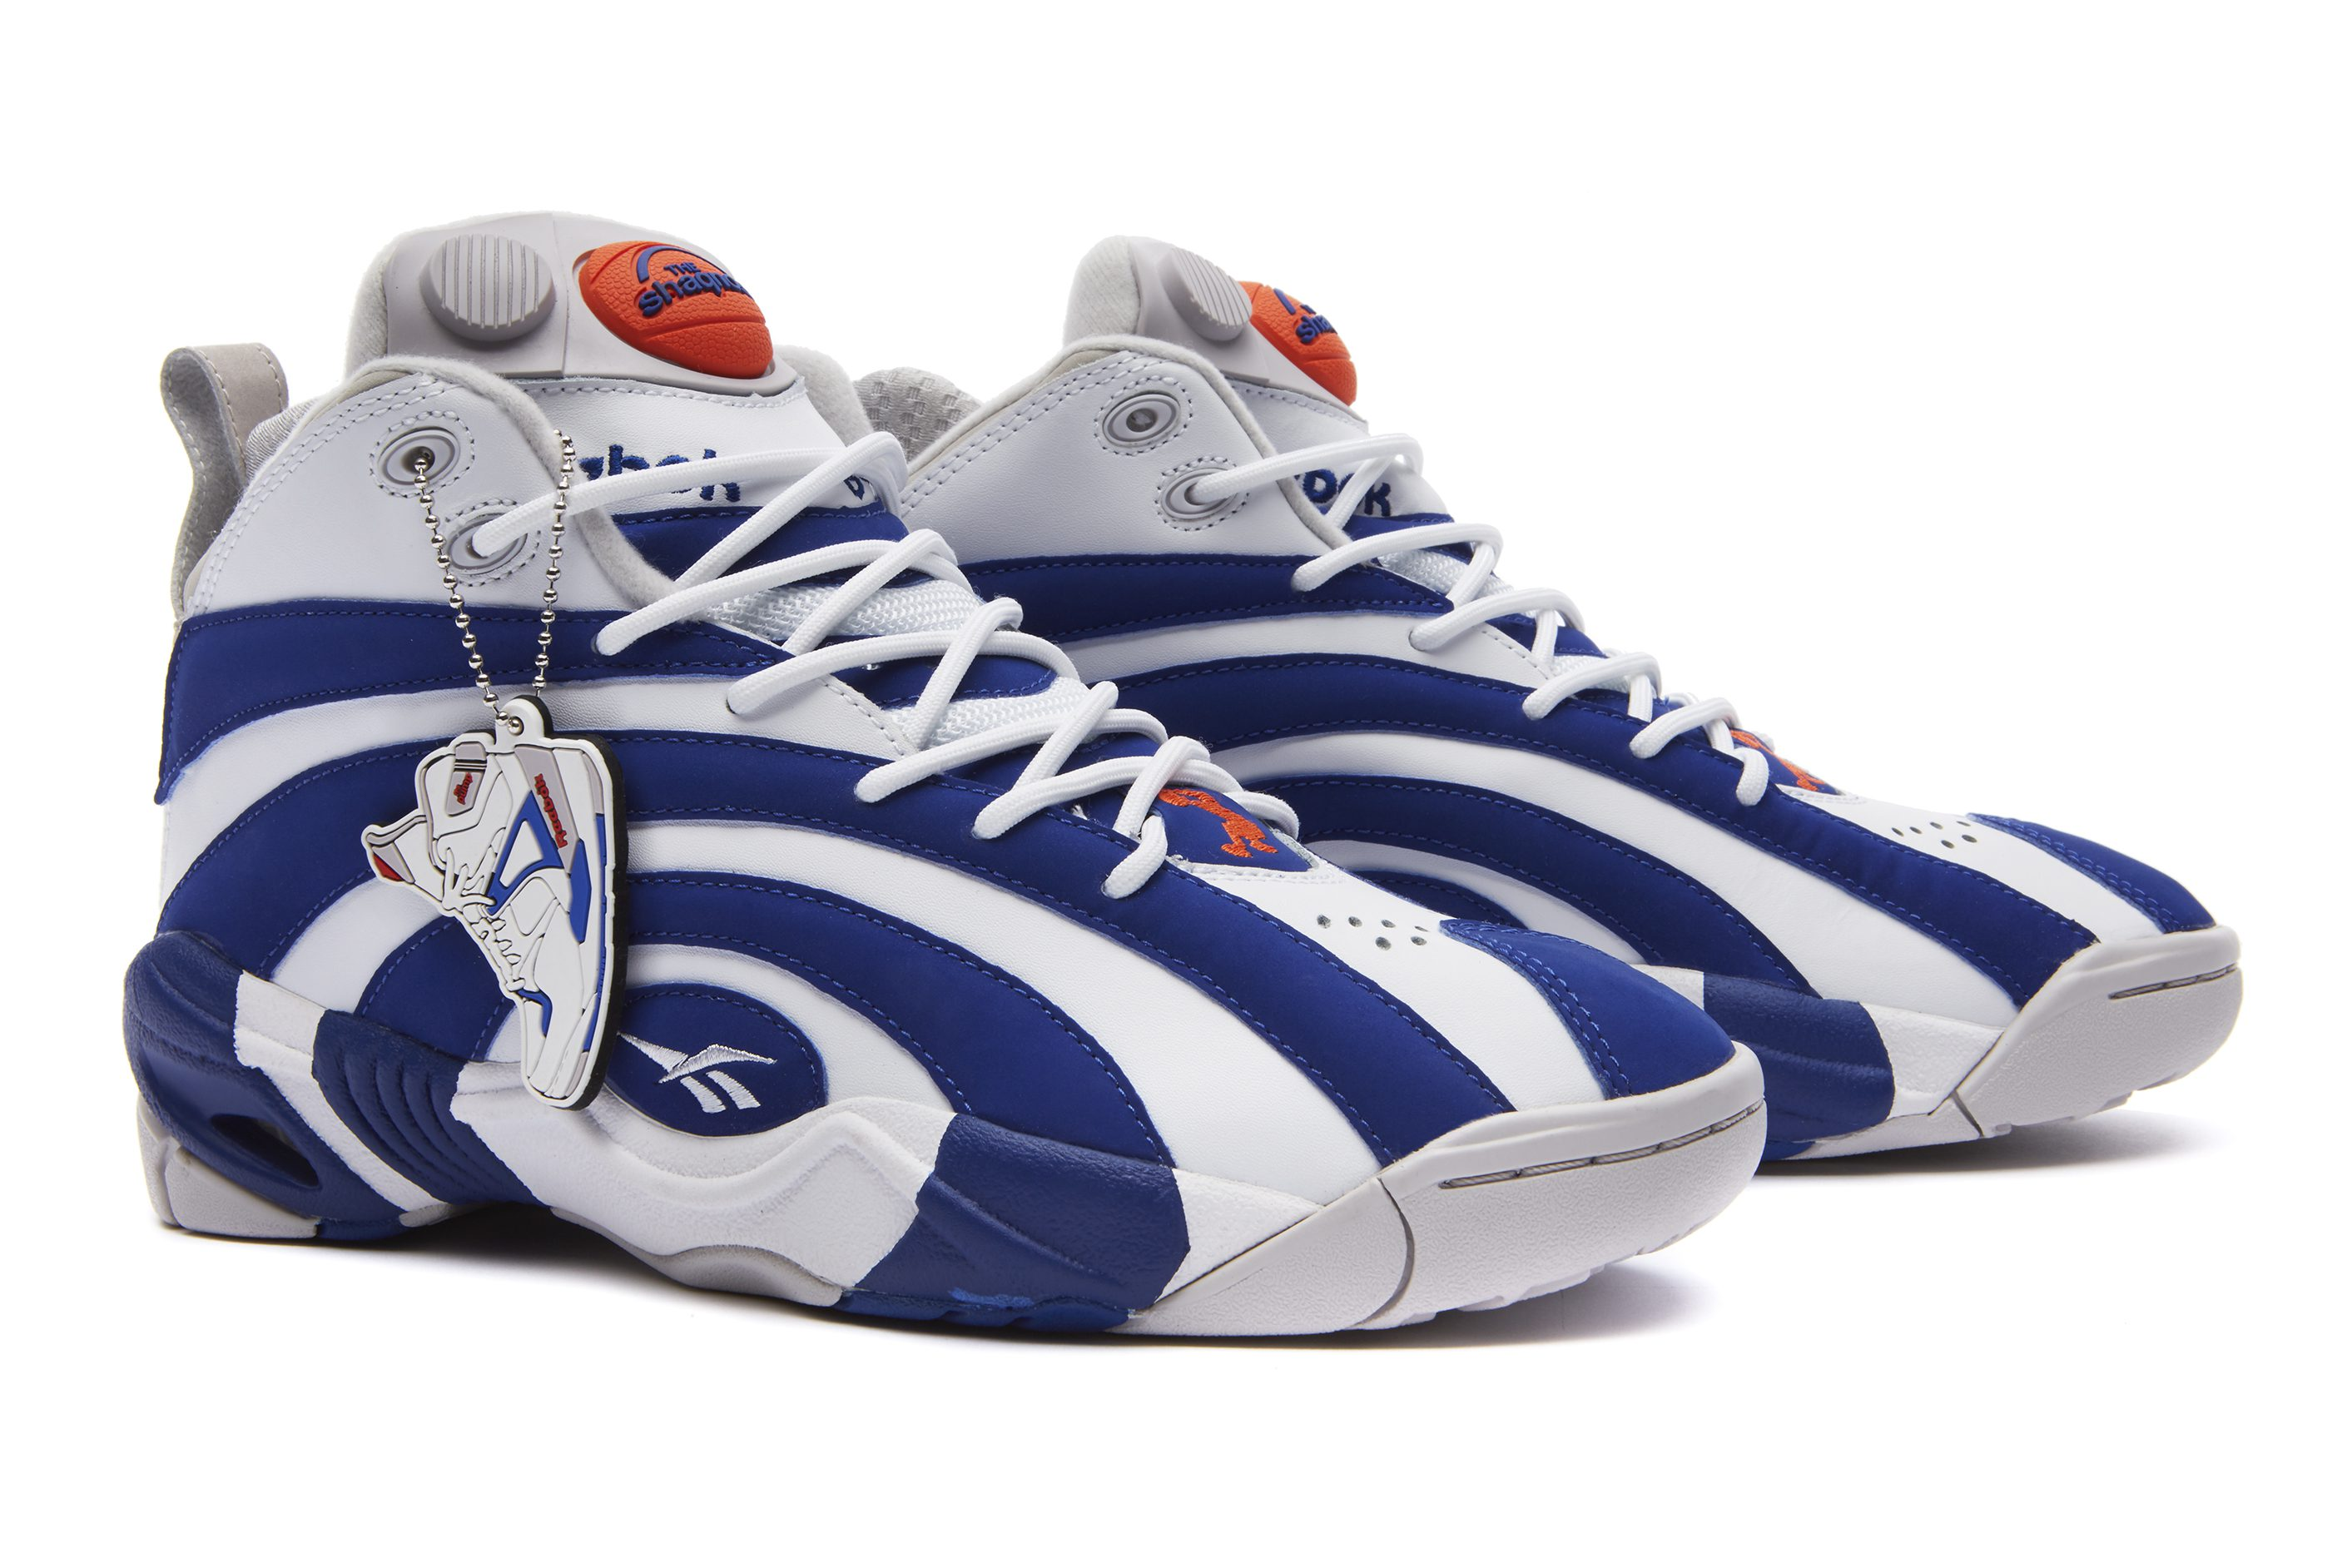 34a414d6a27f Reebok Classic Pump Shaqnosis honors past with  Pump It Up Pack ...